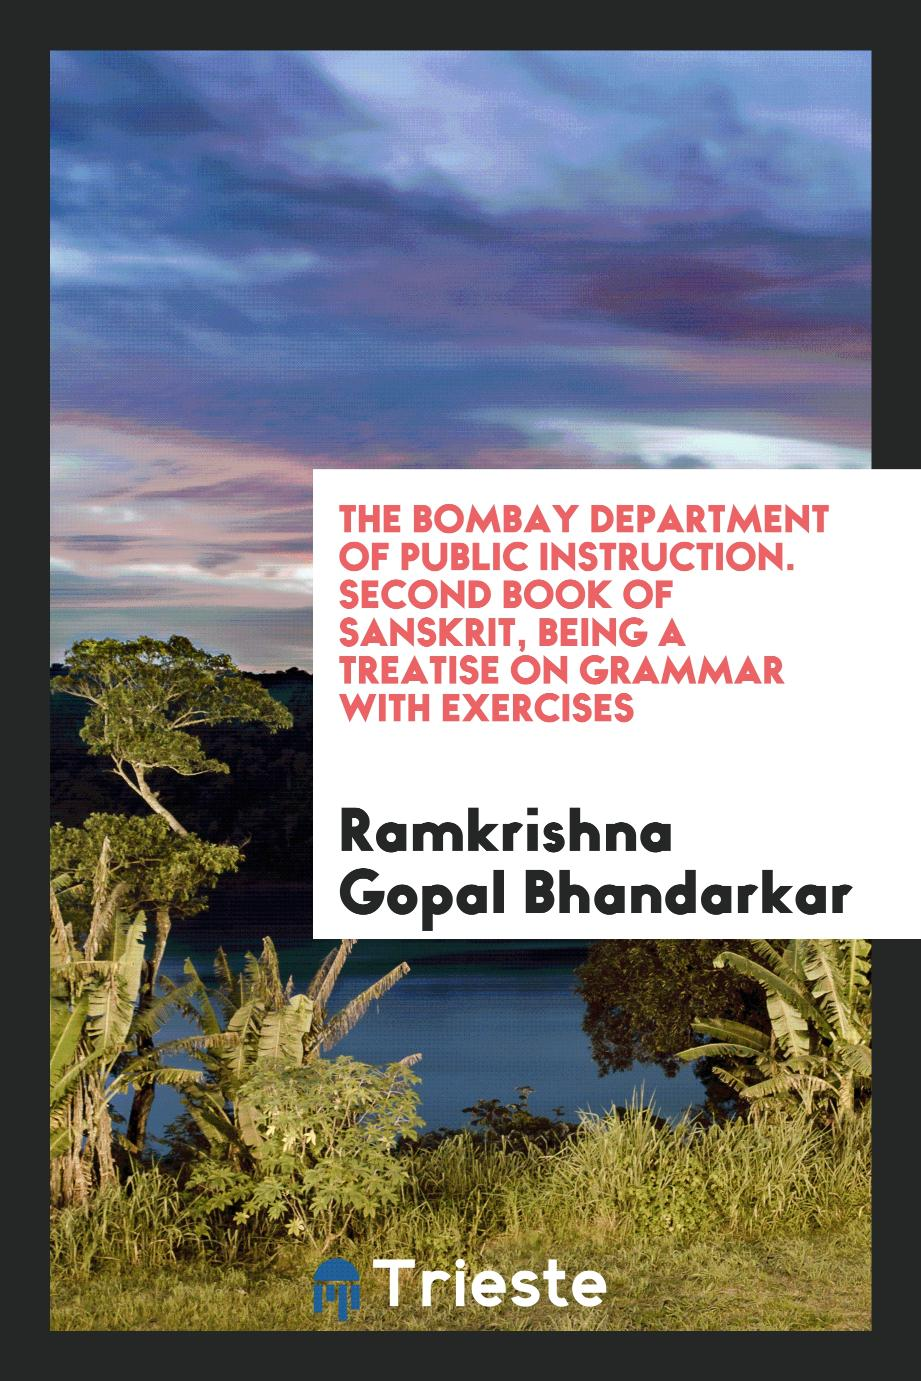 The Bombay Department of Public Instruction. Second Book of Sanskrit, Being a Treatise on Grammar with Exercises